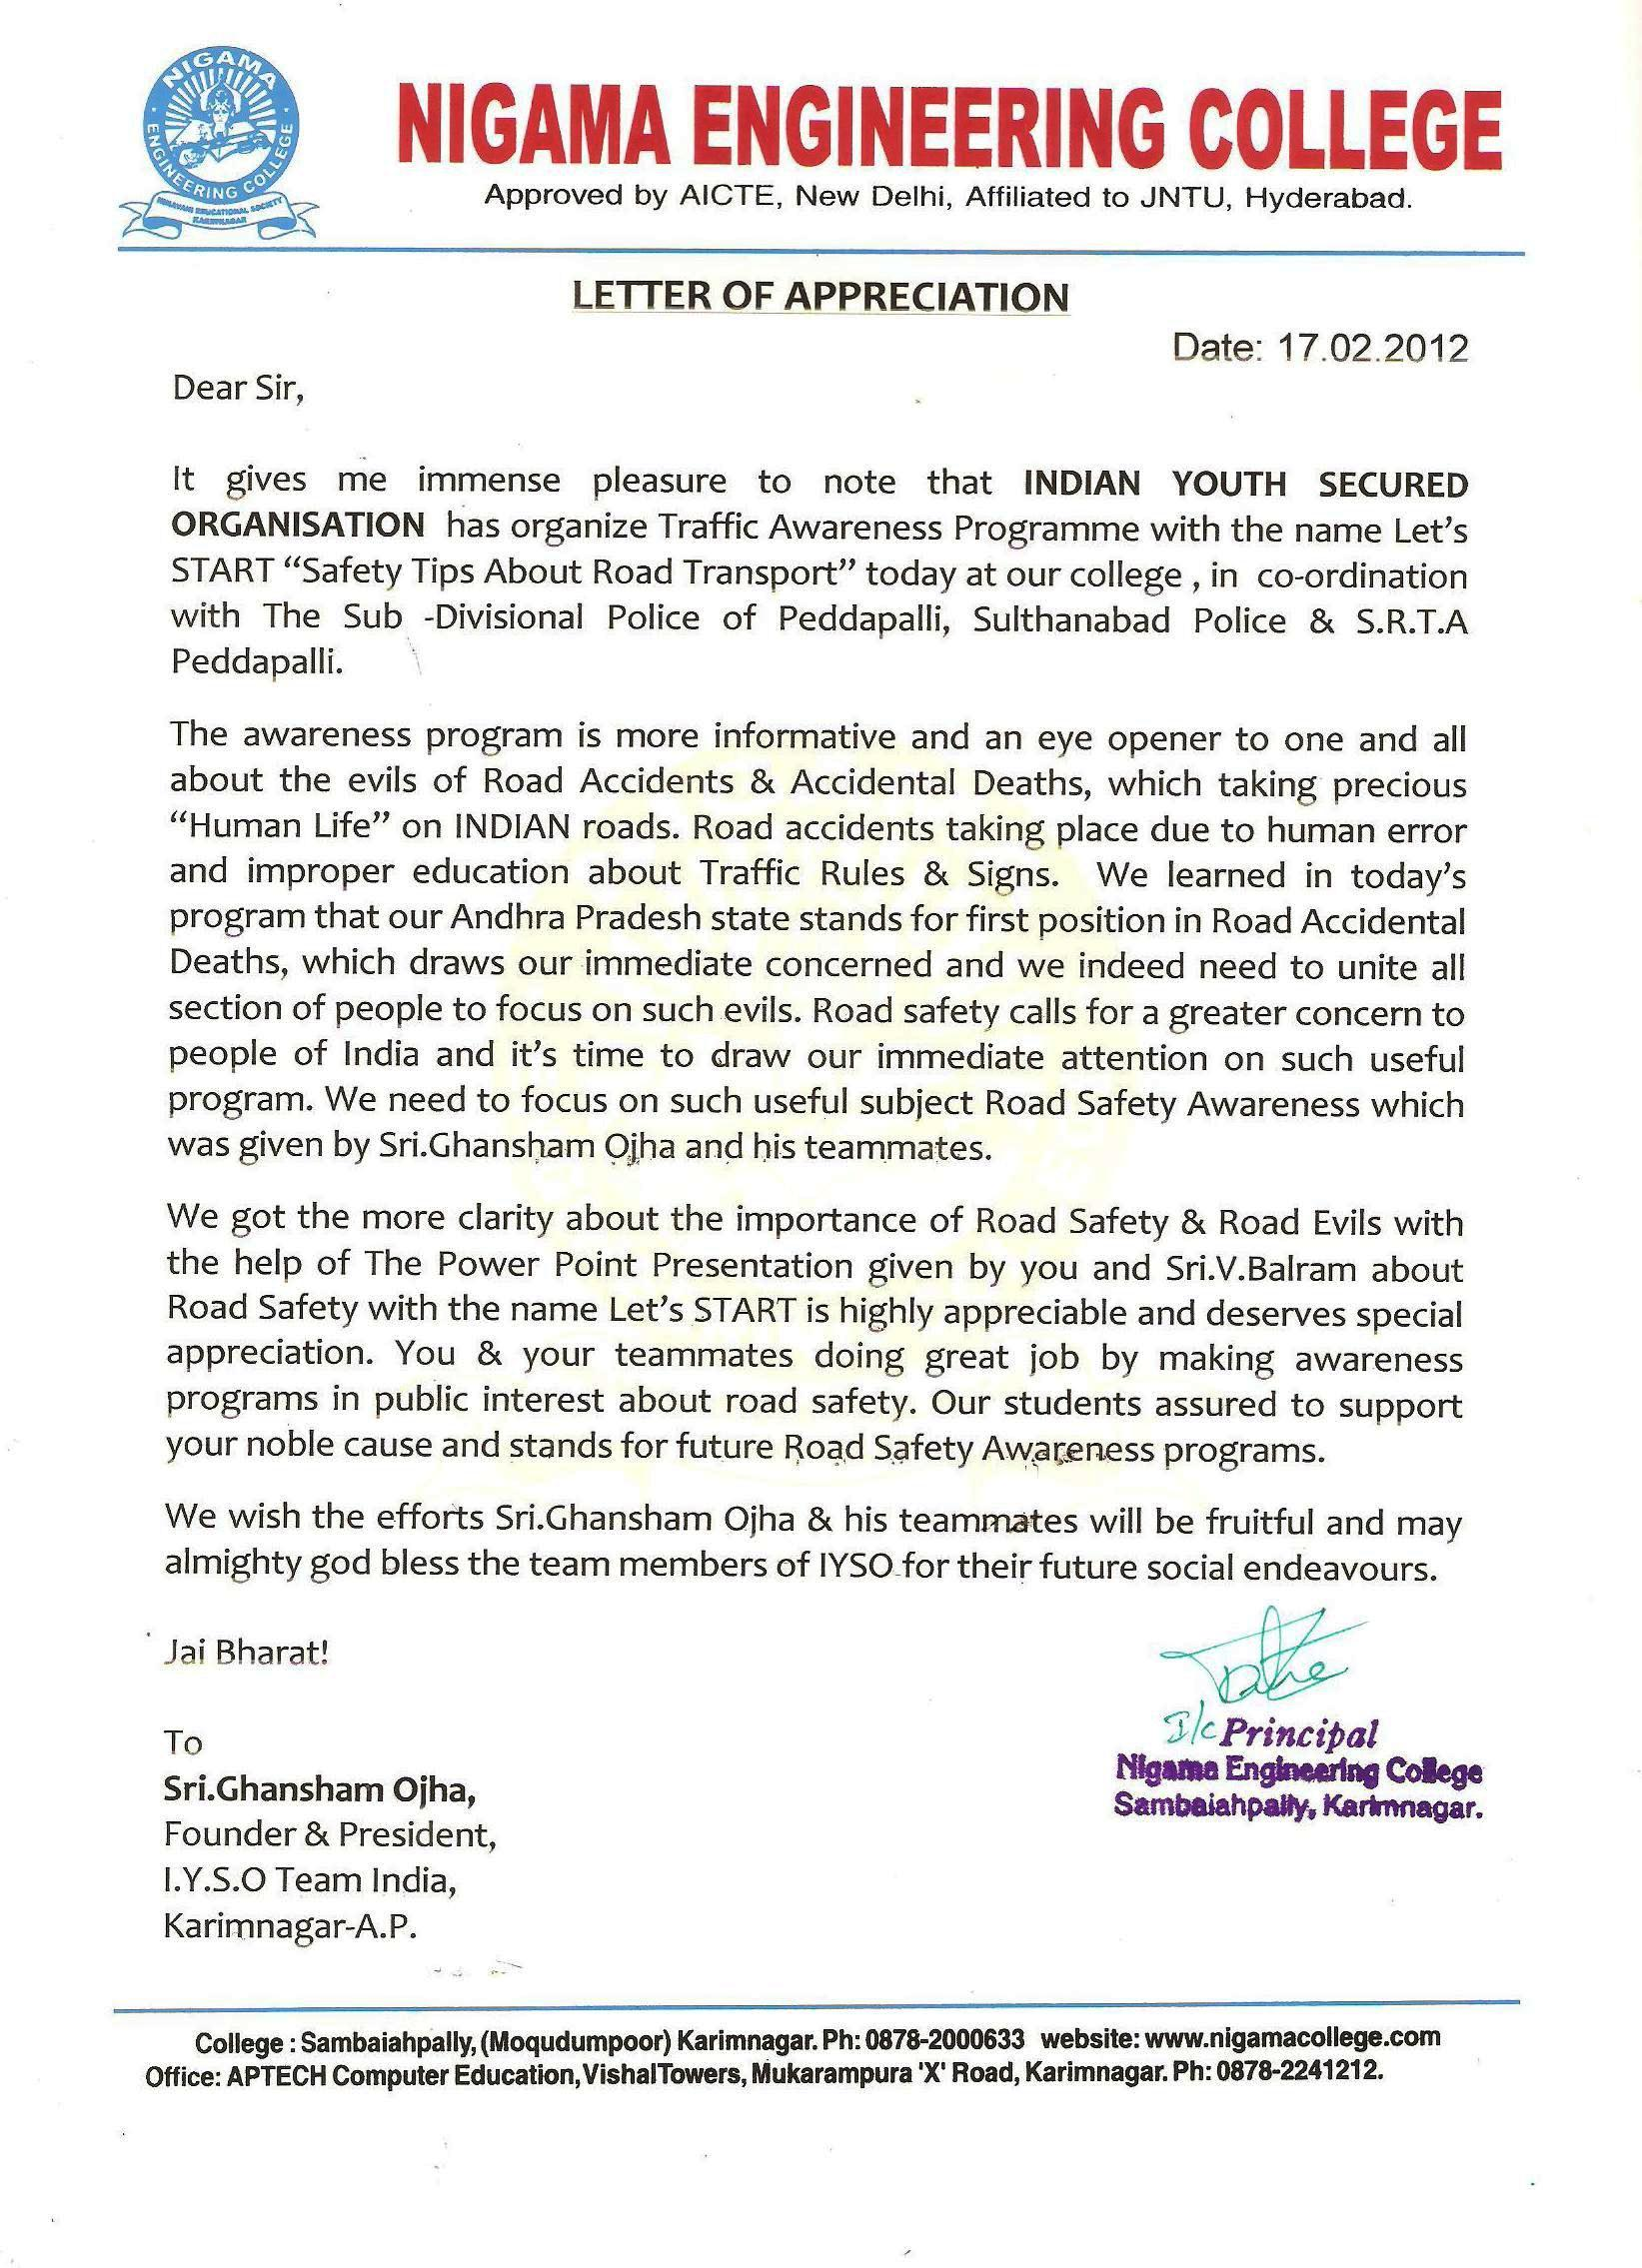 APPRECIATION LETTER-SCANNED COPY | INDIAN YOUTH SECURED ...